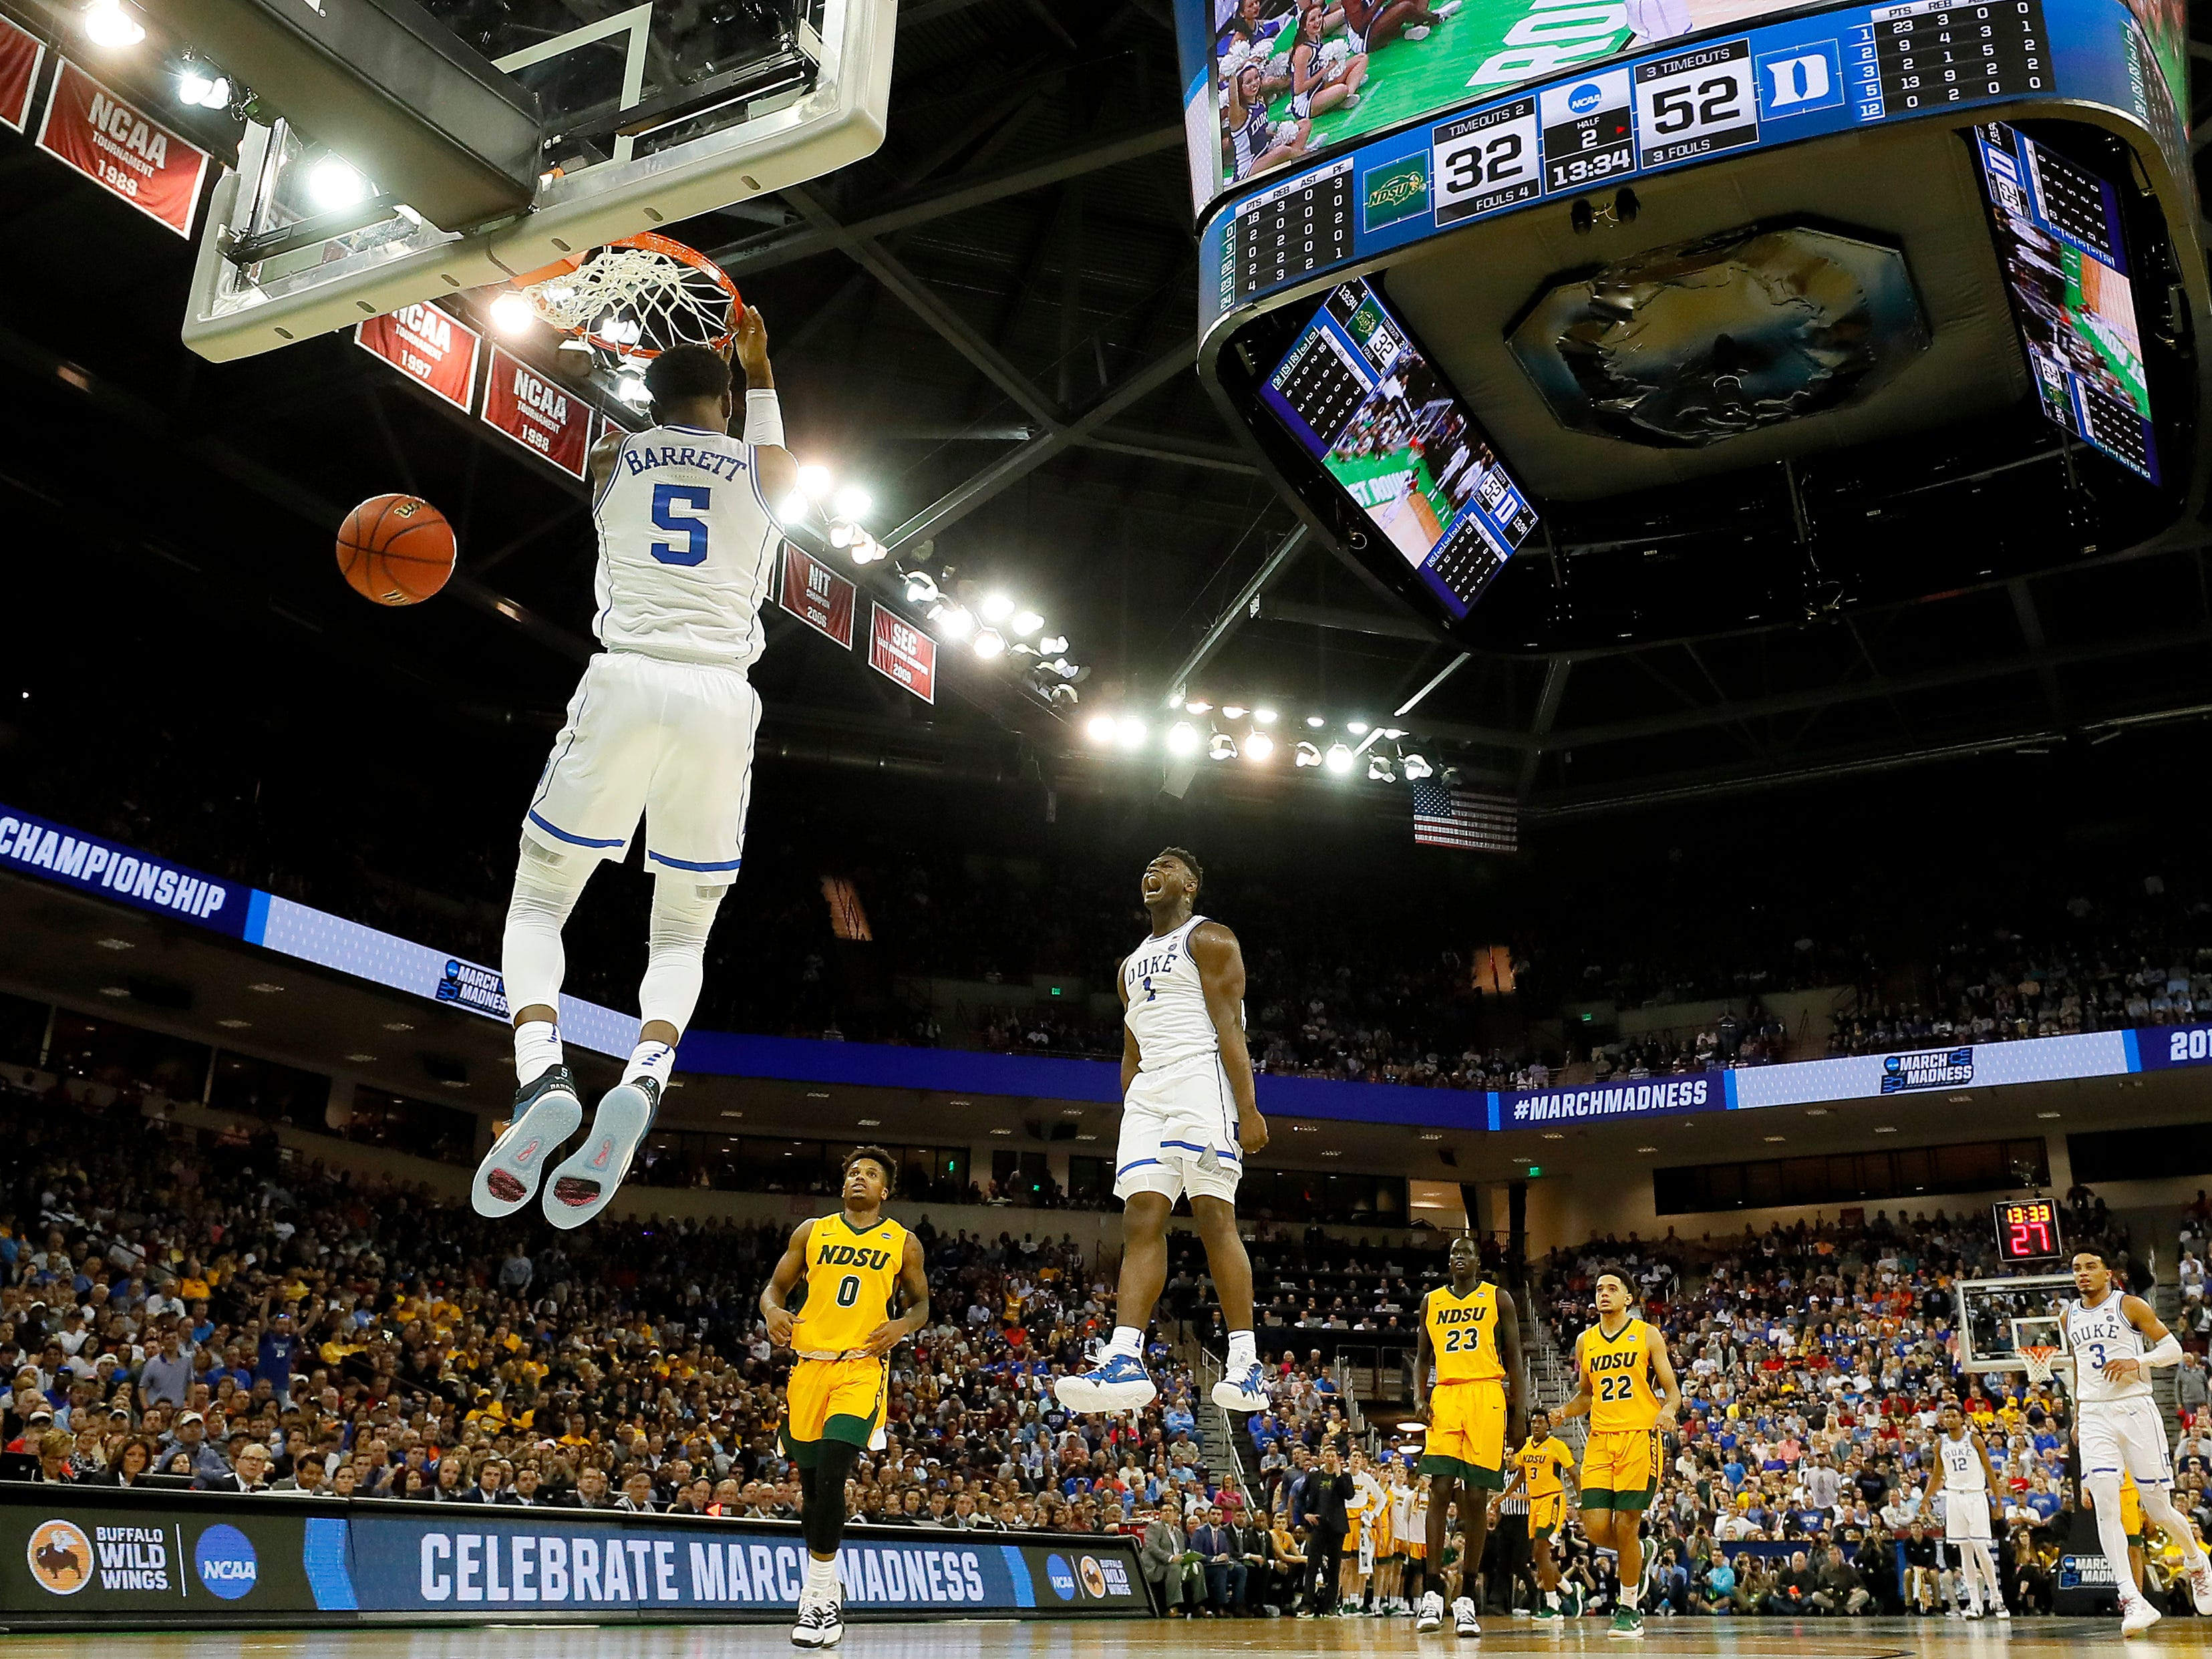 First round: RJ Barrett dunks as Zion Williamson celebrates during Duke's win over the North Dakota State Bison. The two freshmen combined for 51 points.